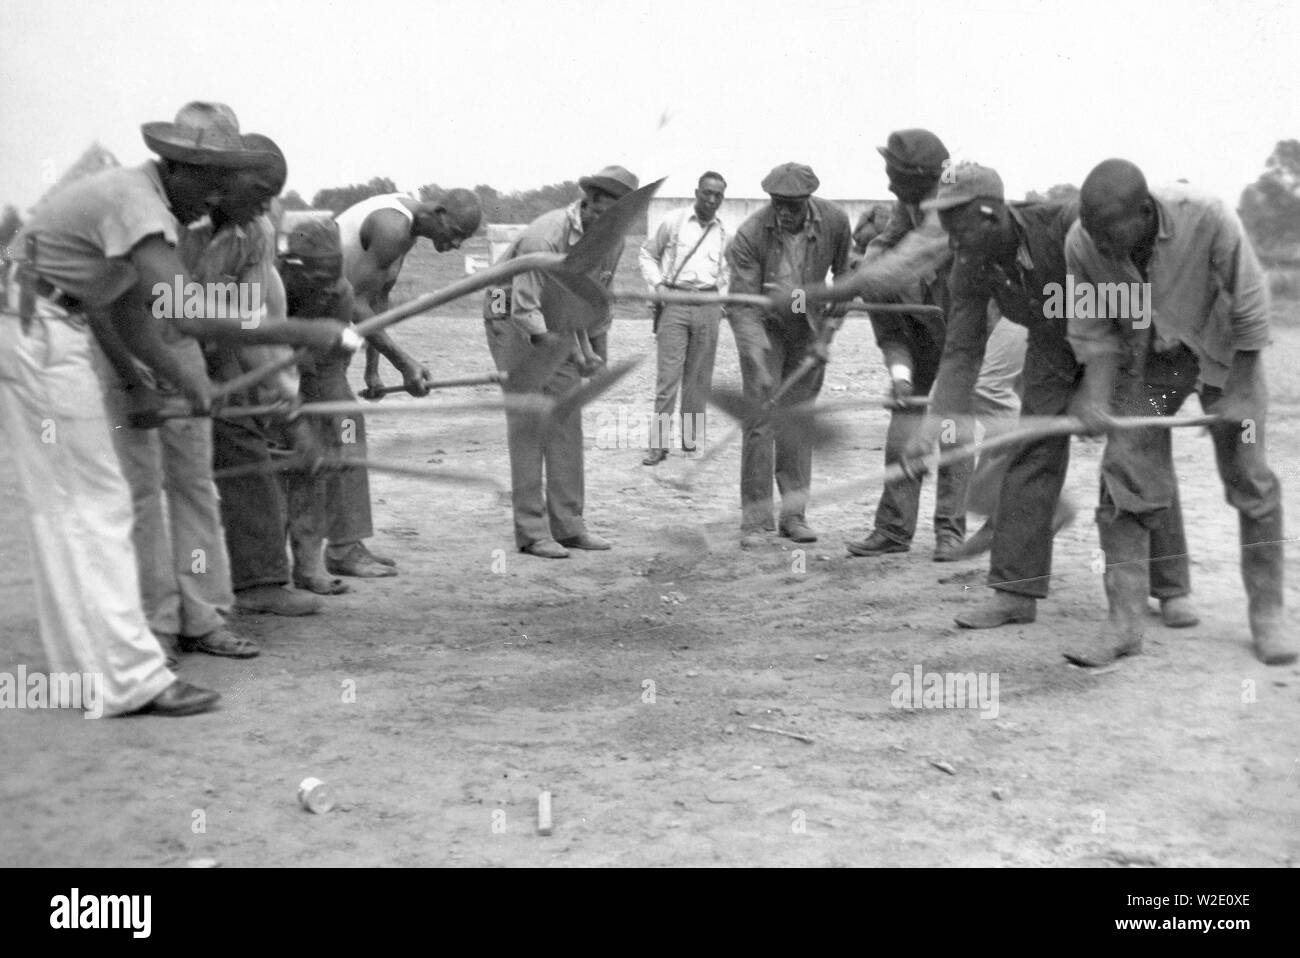 African American convicts working with shovels, possibly the